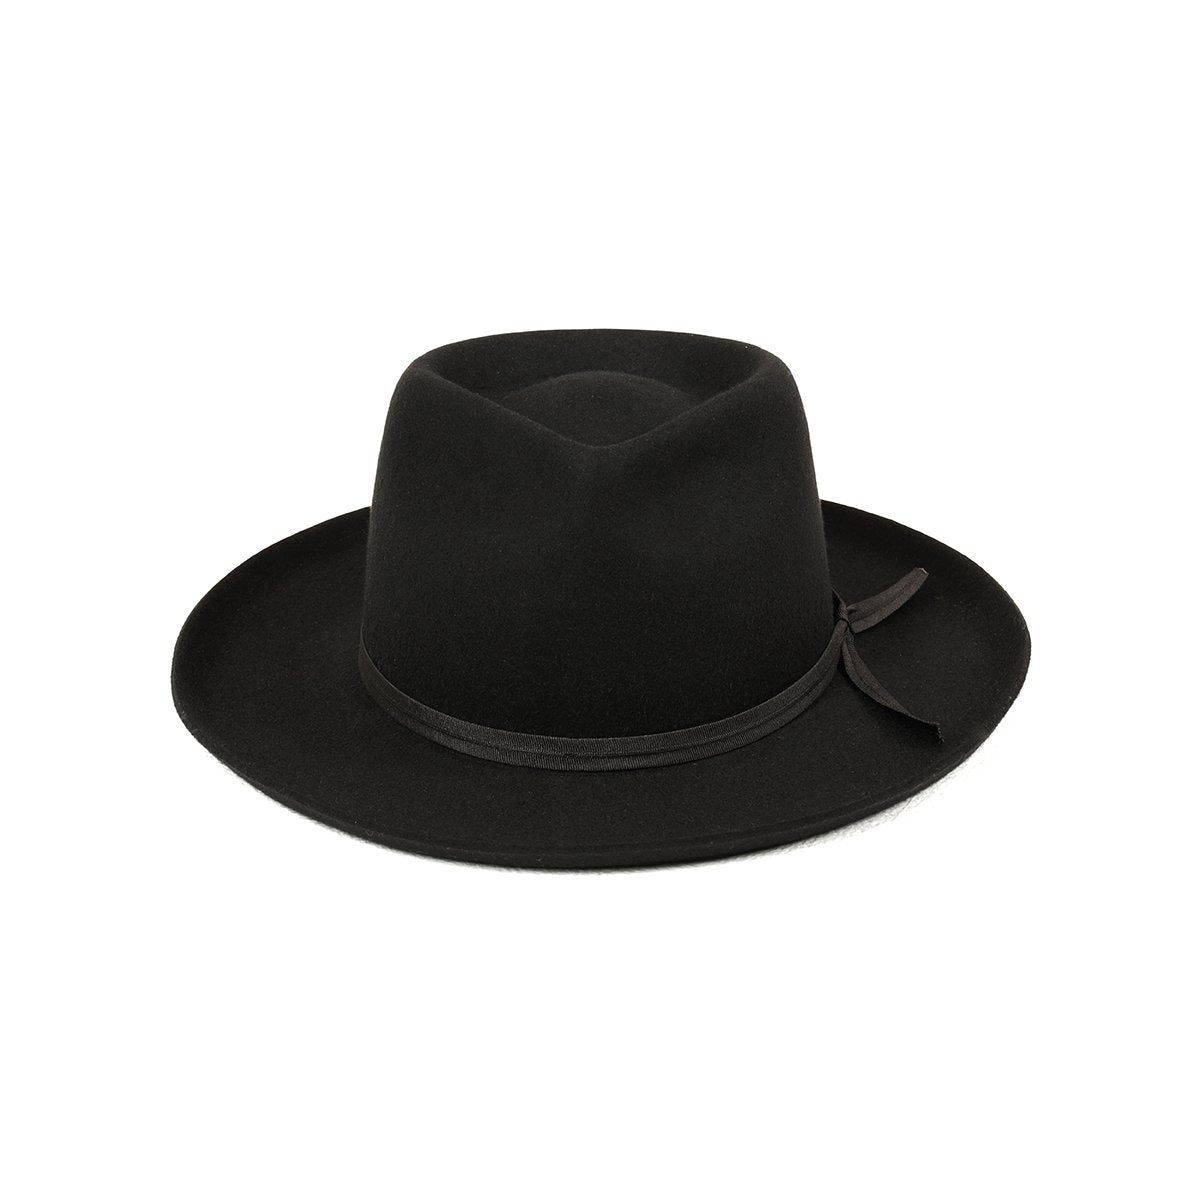 Load image into Gallery viewer, Lack of Color Jethro II | Black Hats